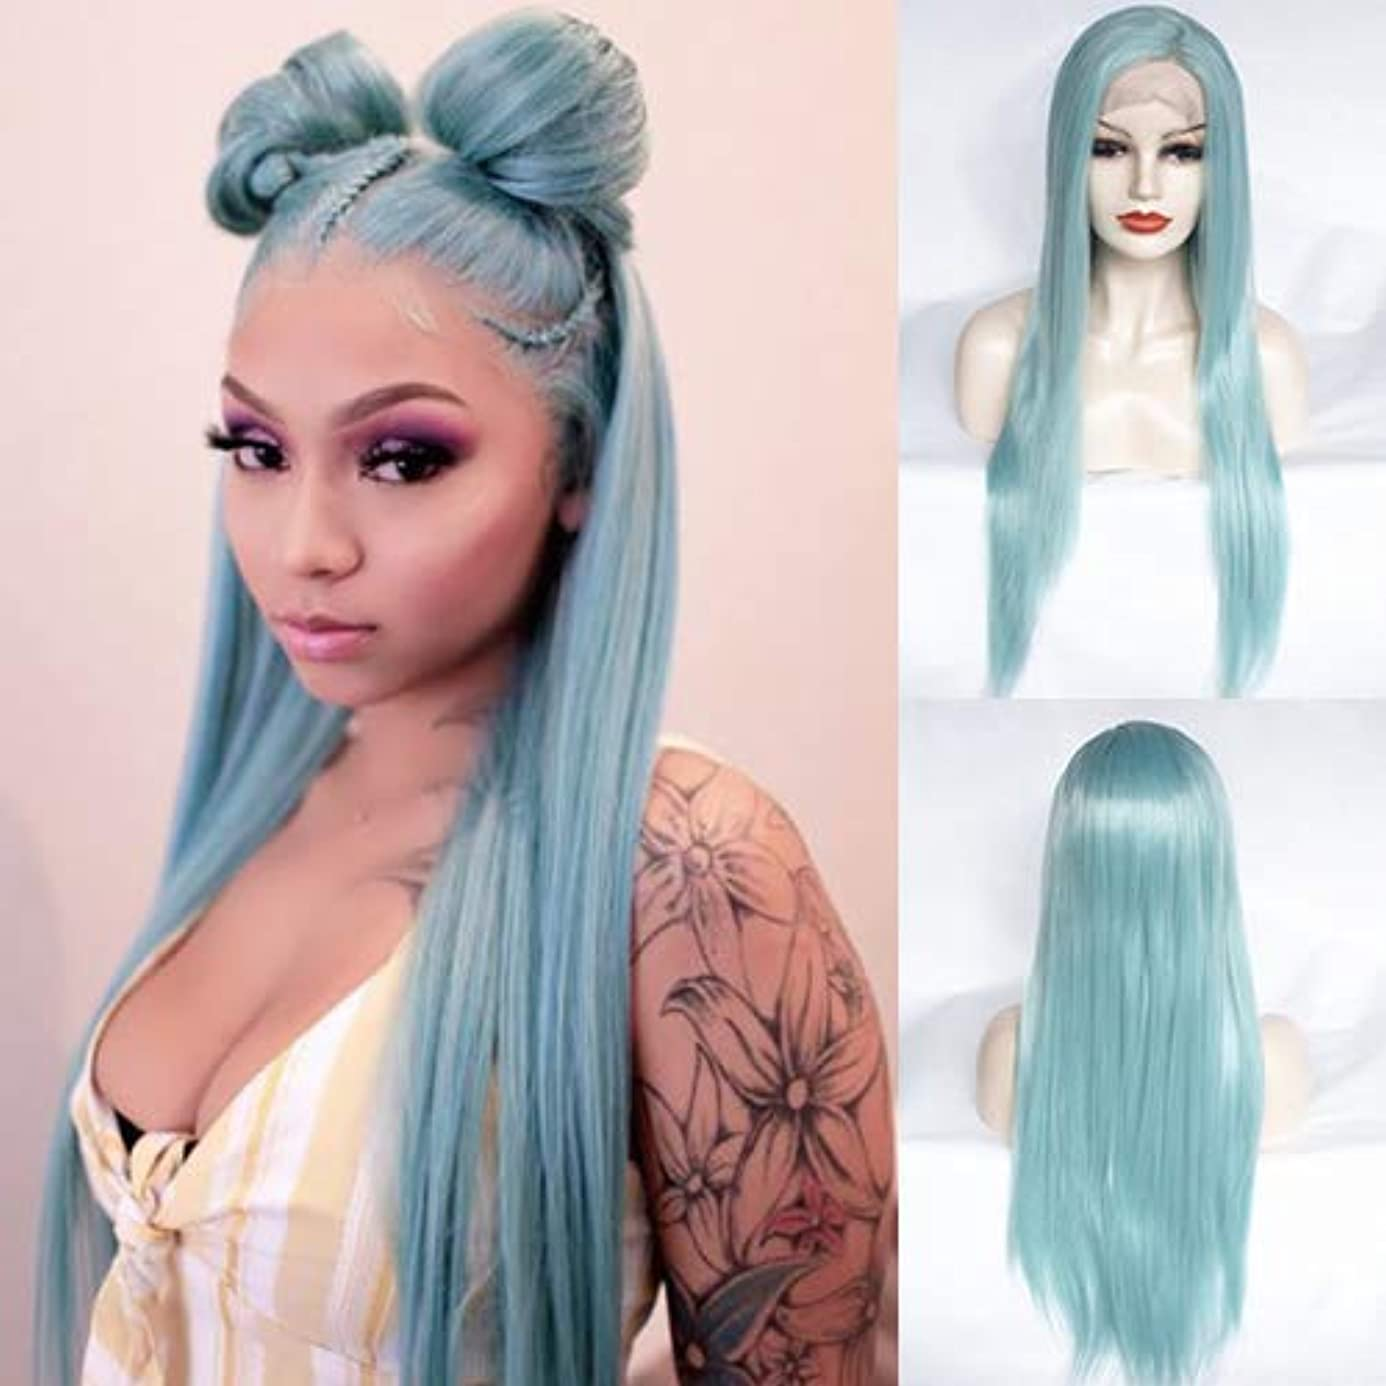 IVY HAIR Light Green Lace Front Wig Glueless Long Silky Stright Smokey Blue Synthetic Hair Wigs for Women Side Part Heat Resistant Fiber Wig Party Daily Wear Half Hand Tied 24Inches fff4687533